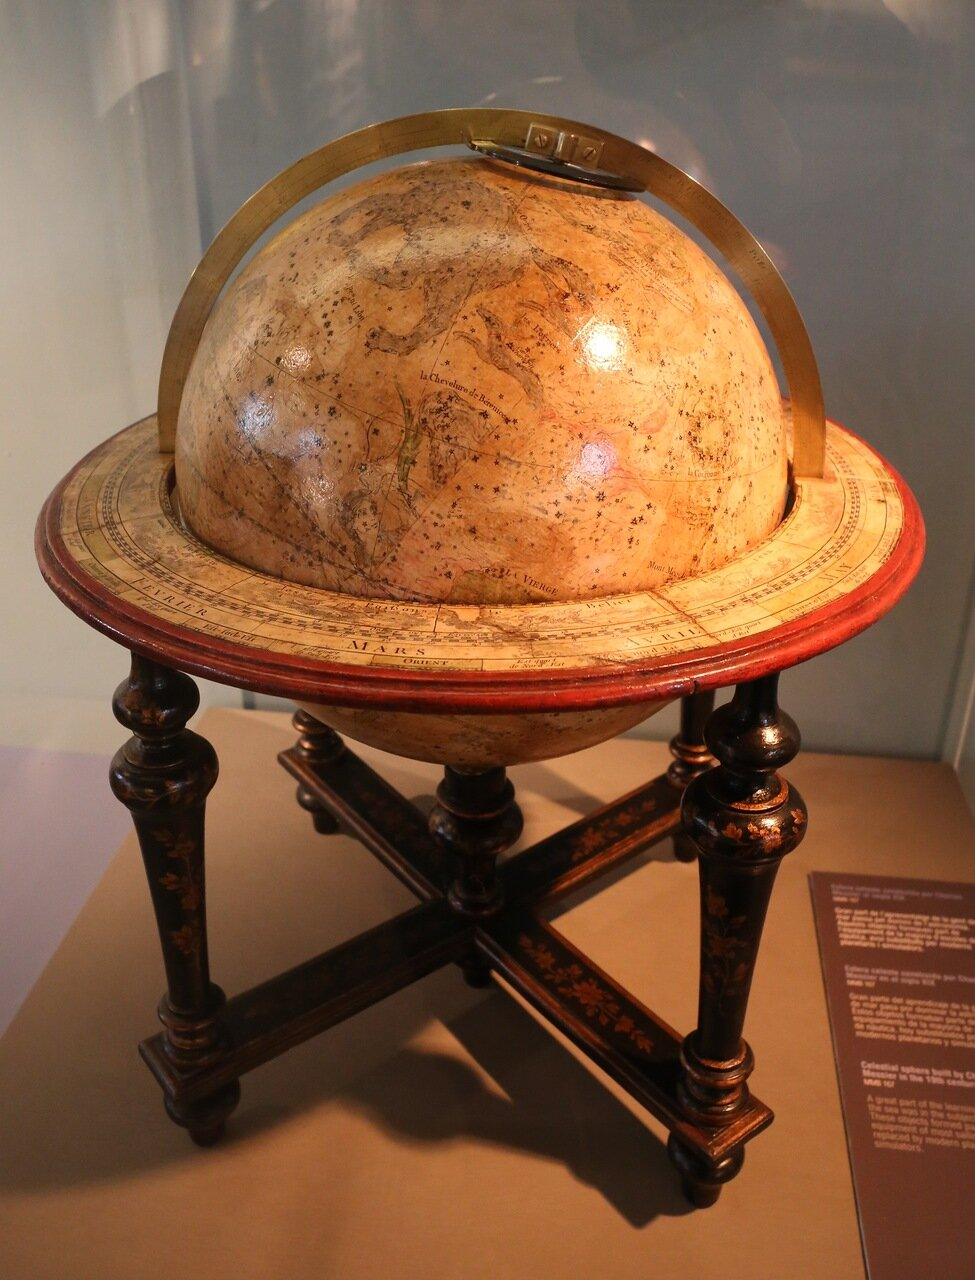 Maritime Museum of Barcelona. The globe of the constellations